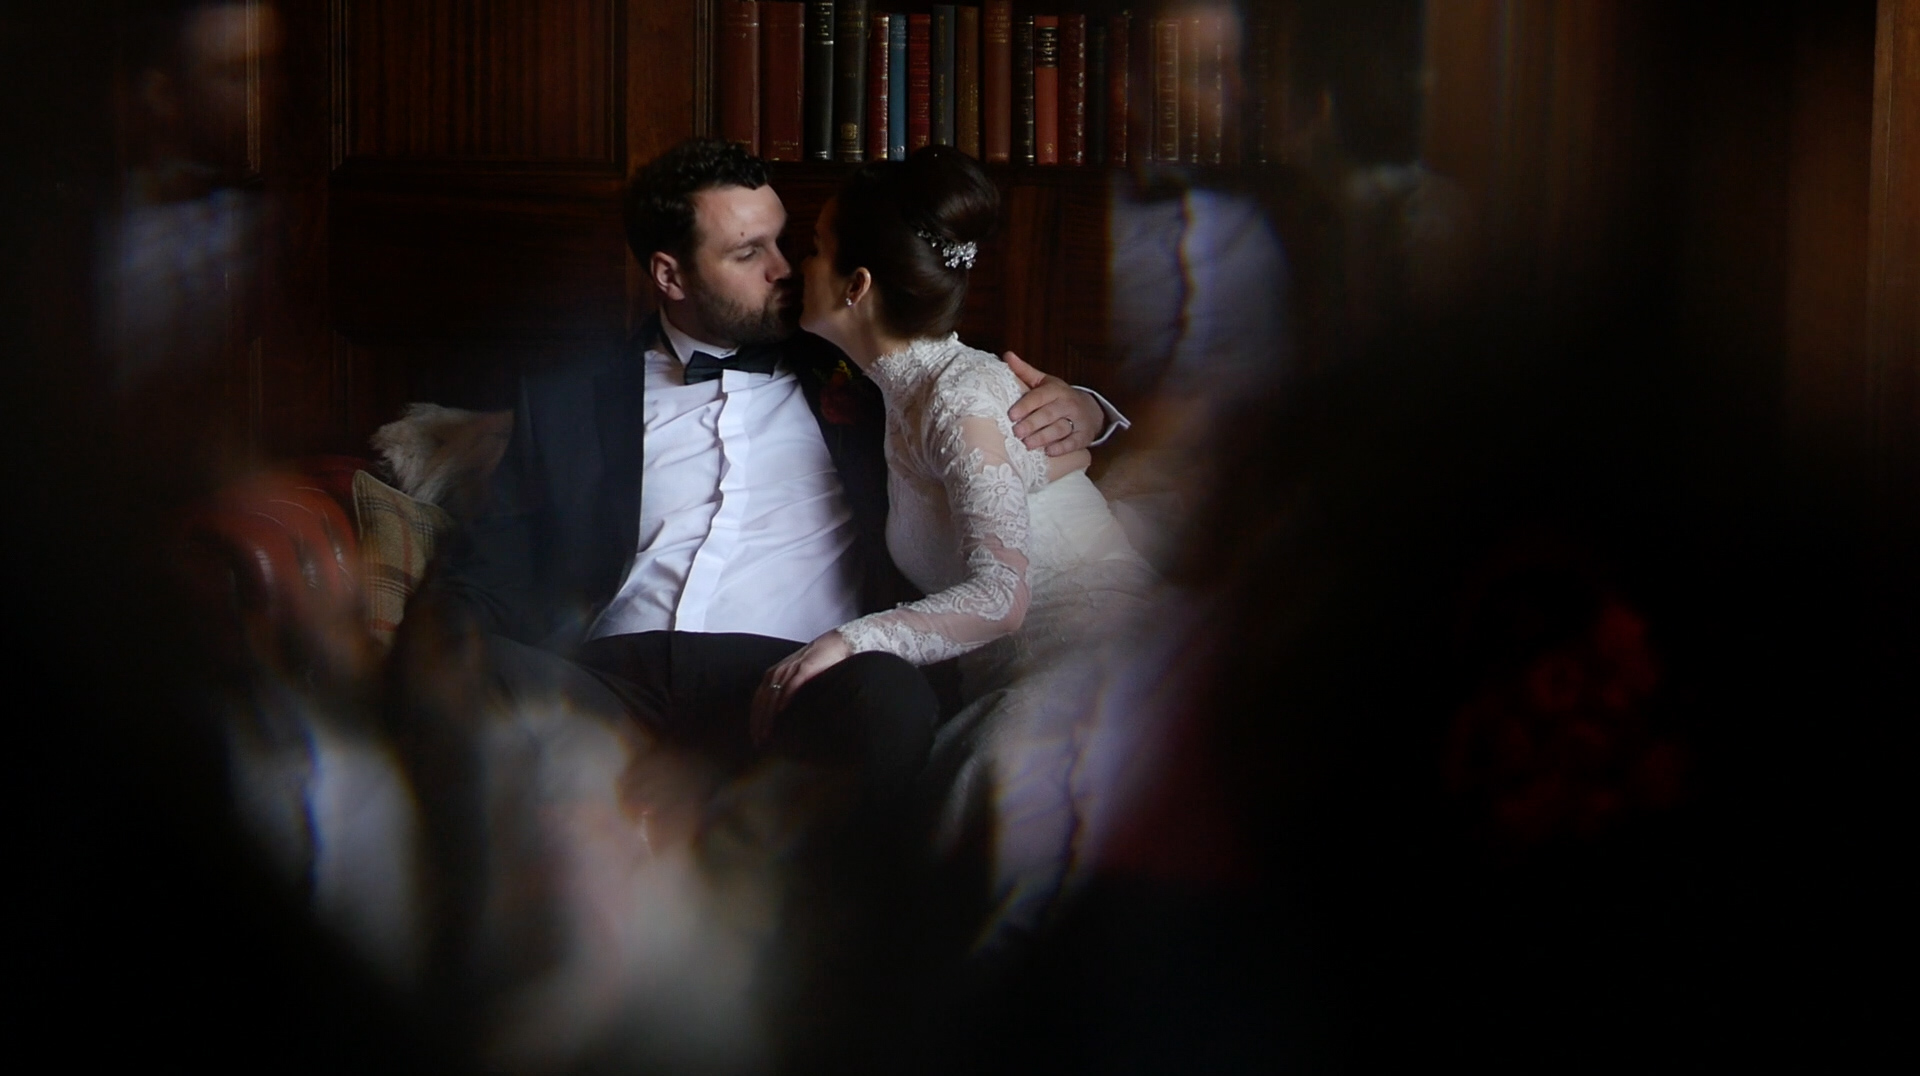 Jennifer Sandra Ginley and Luke share a kiss on their wedding day whilst sitting on a couch together at the stunning, Ashfield House wedding venue.